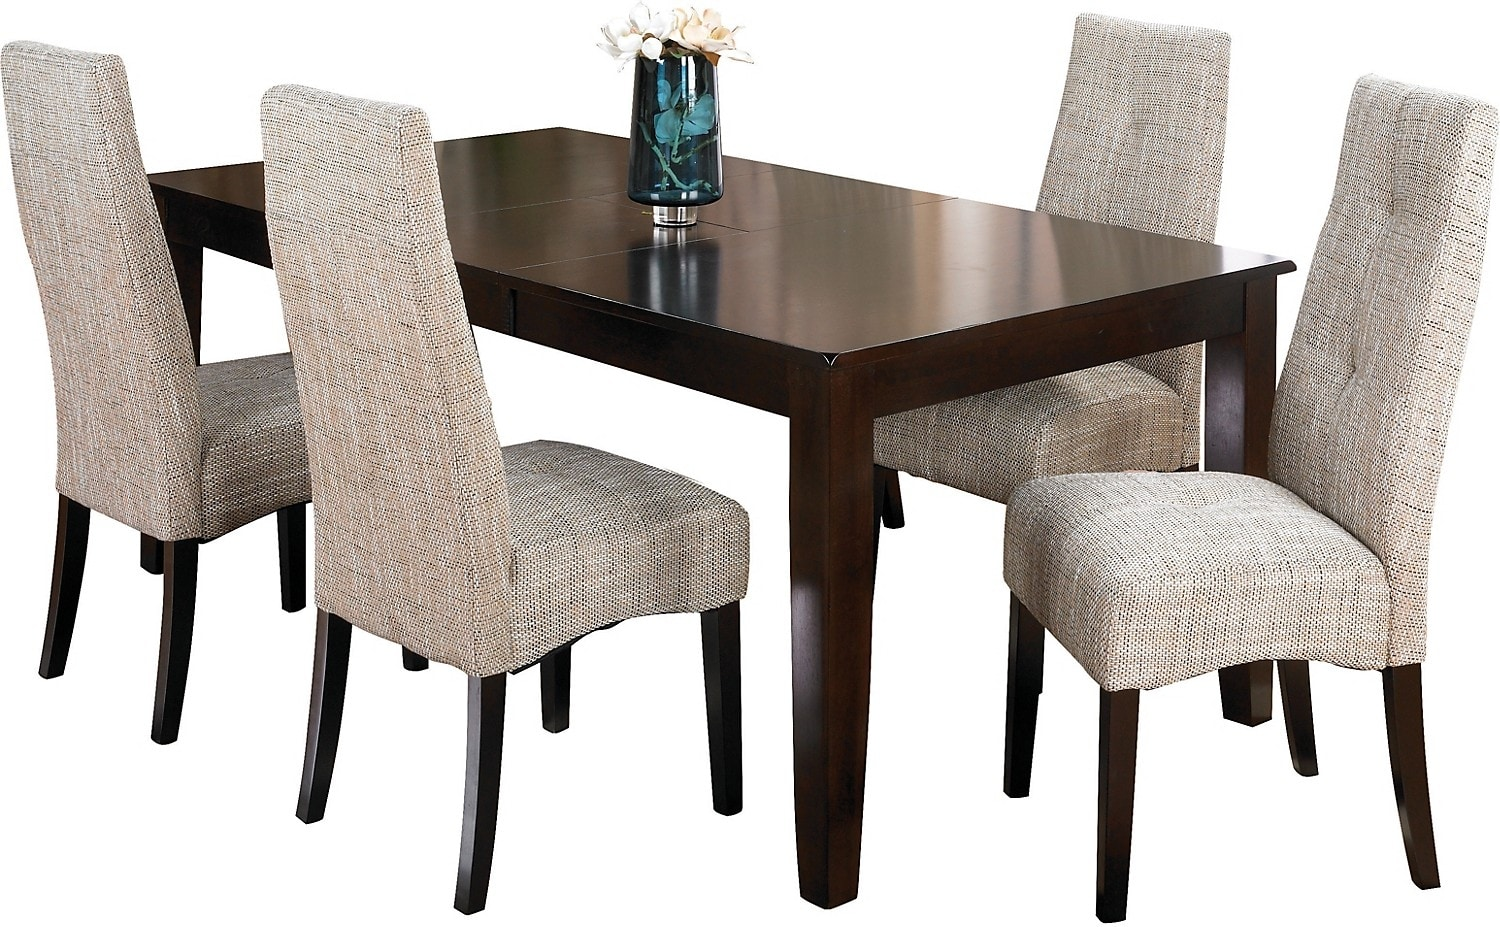 Dining Room Furniture - Dakota 5 Piece Dining Package w/ Linen Chairs